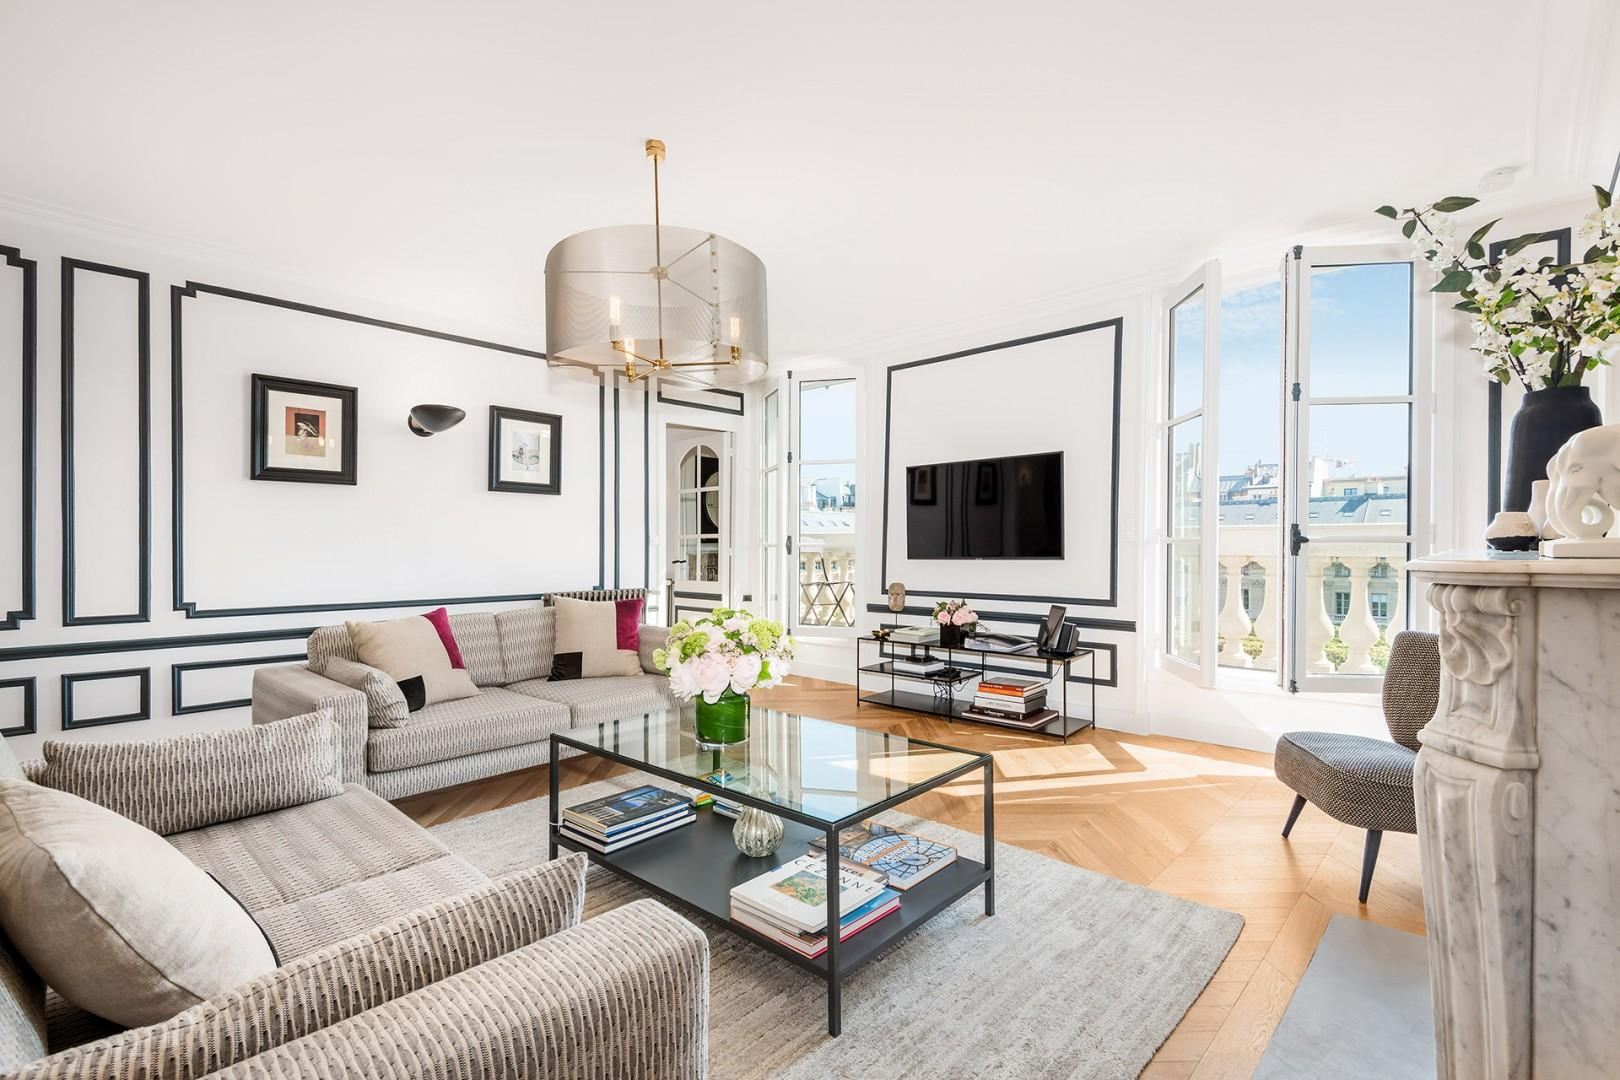 This sprawling apartment offers masses of charm.